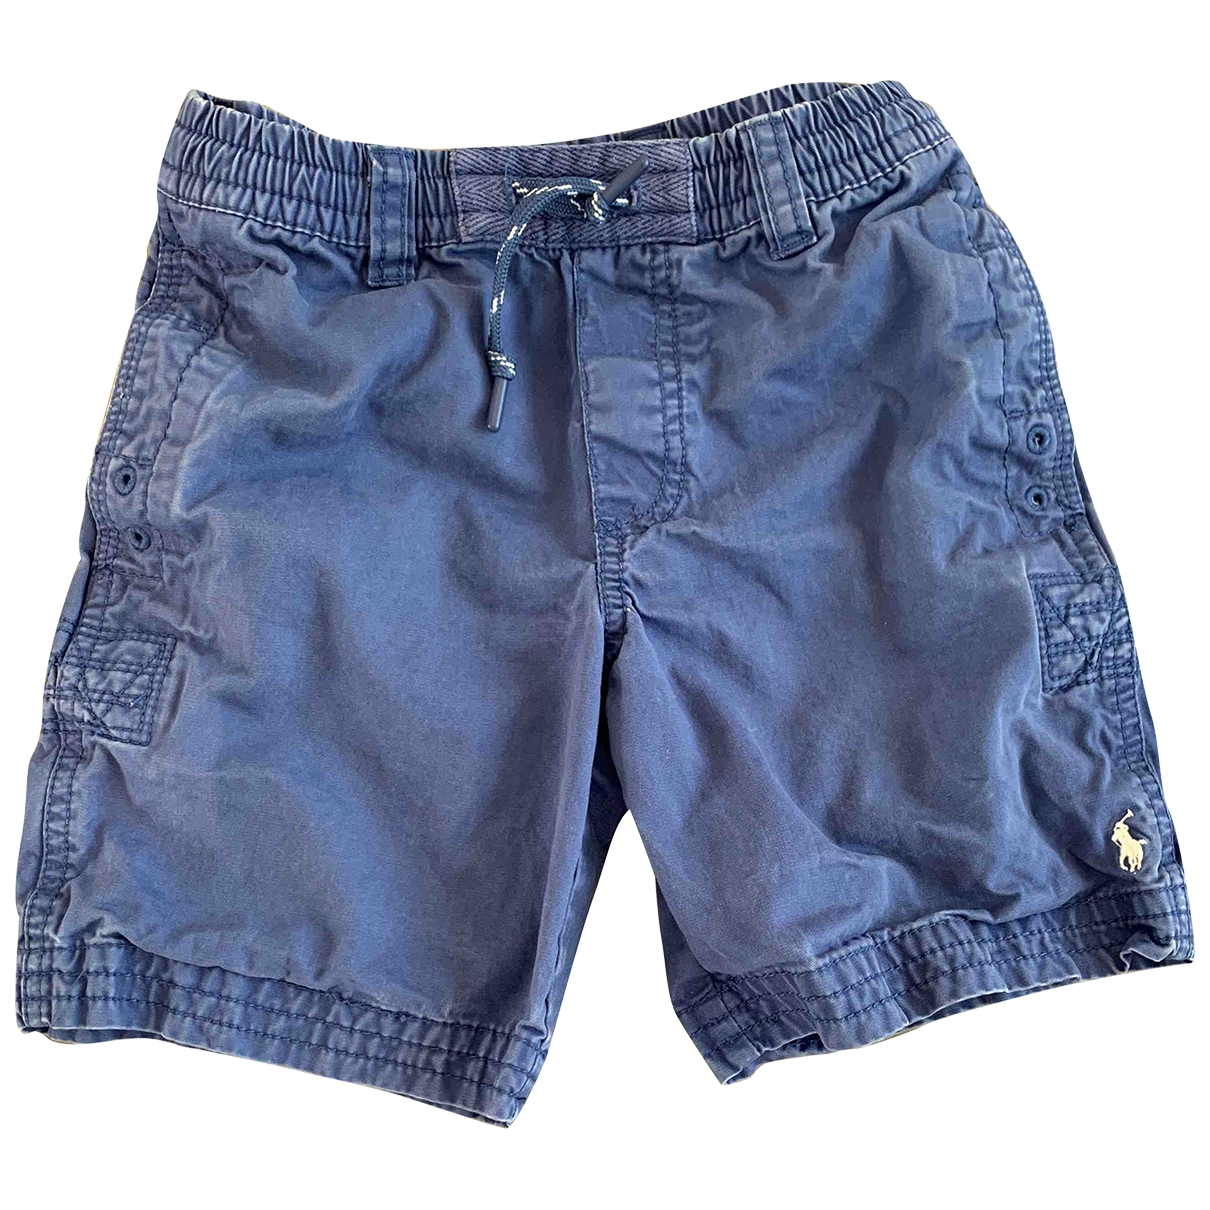 Polo Ralph Lauren \N Blue Cotton Shorts for Kids 6 years - until 45 inches UK